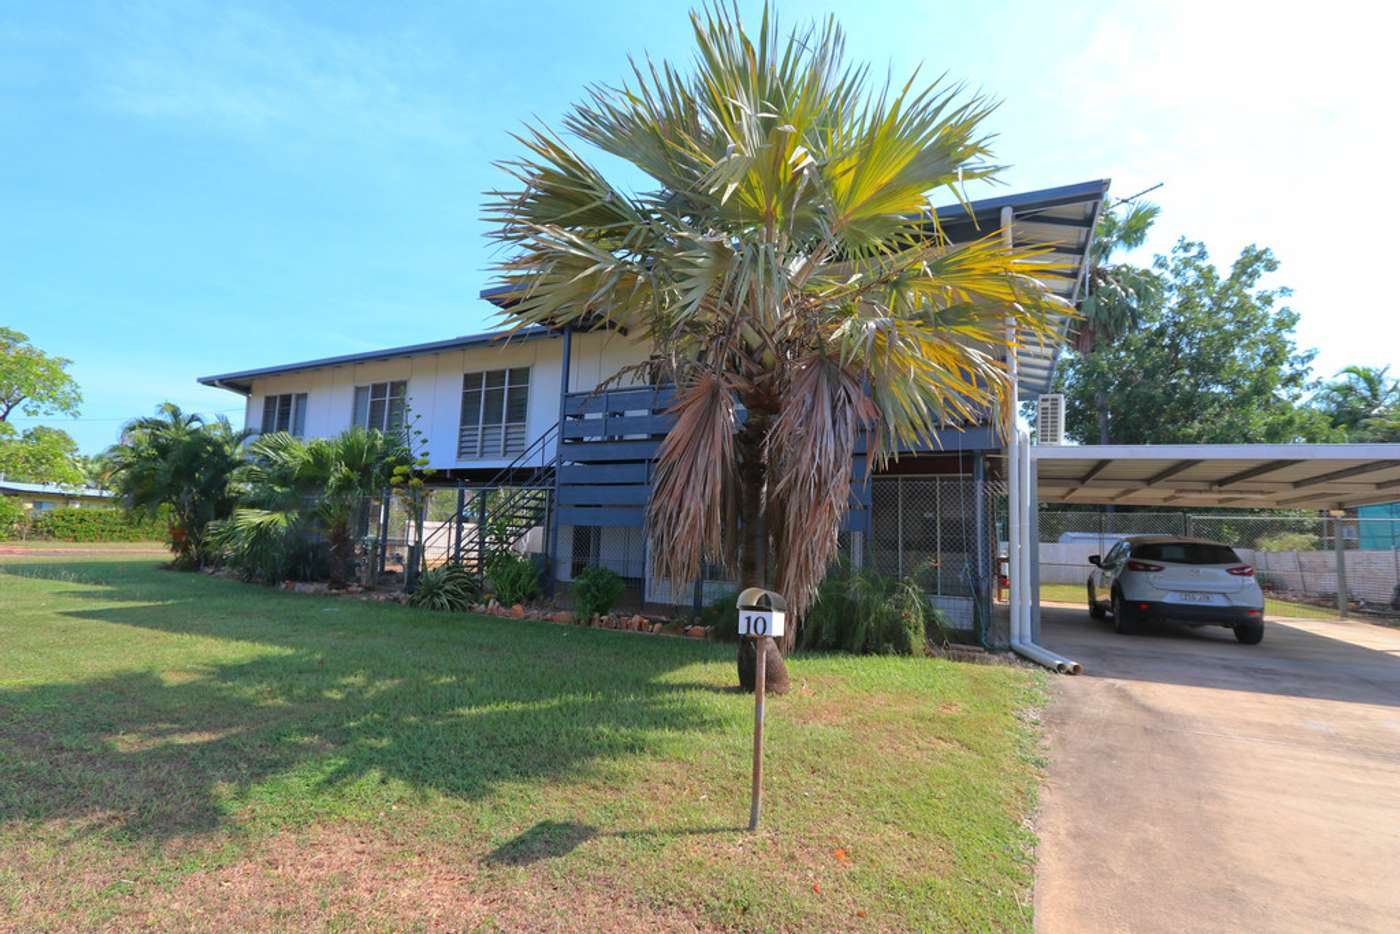 Main view of Homely house listing, 10 Auster Street, Katherine NT 850